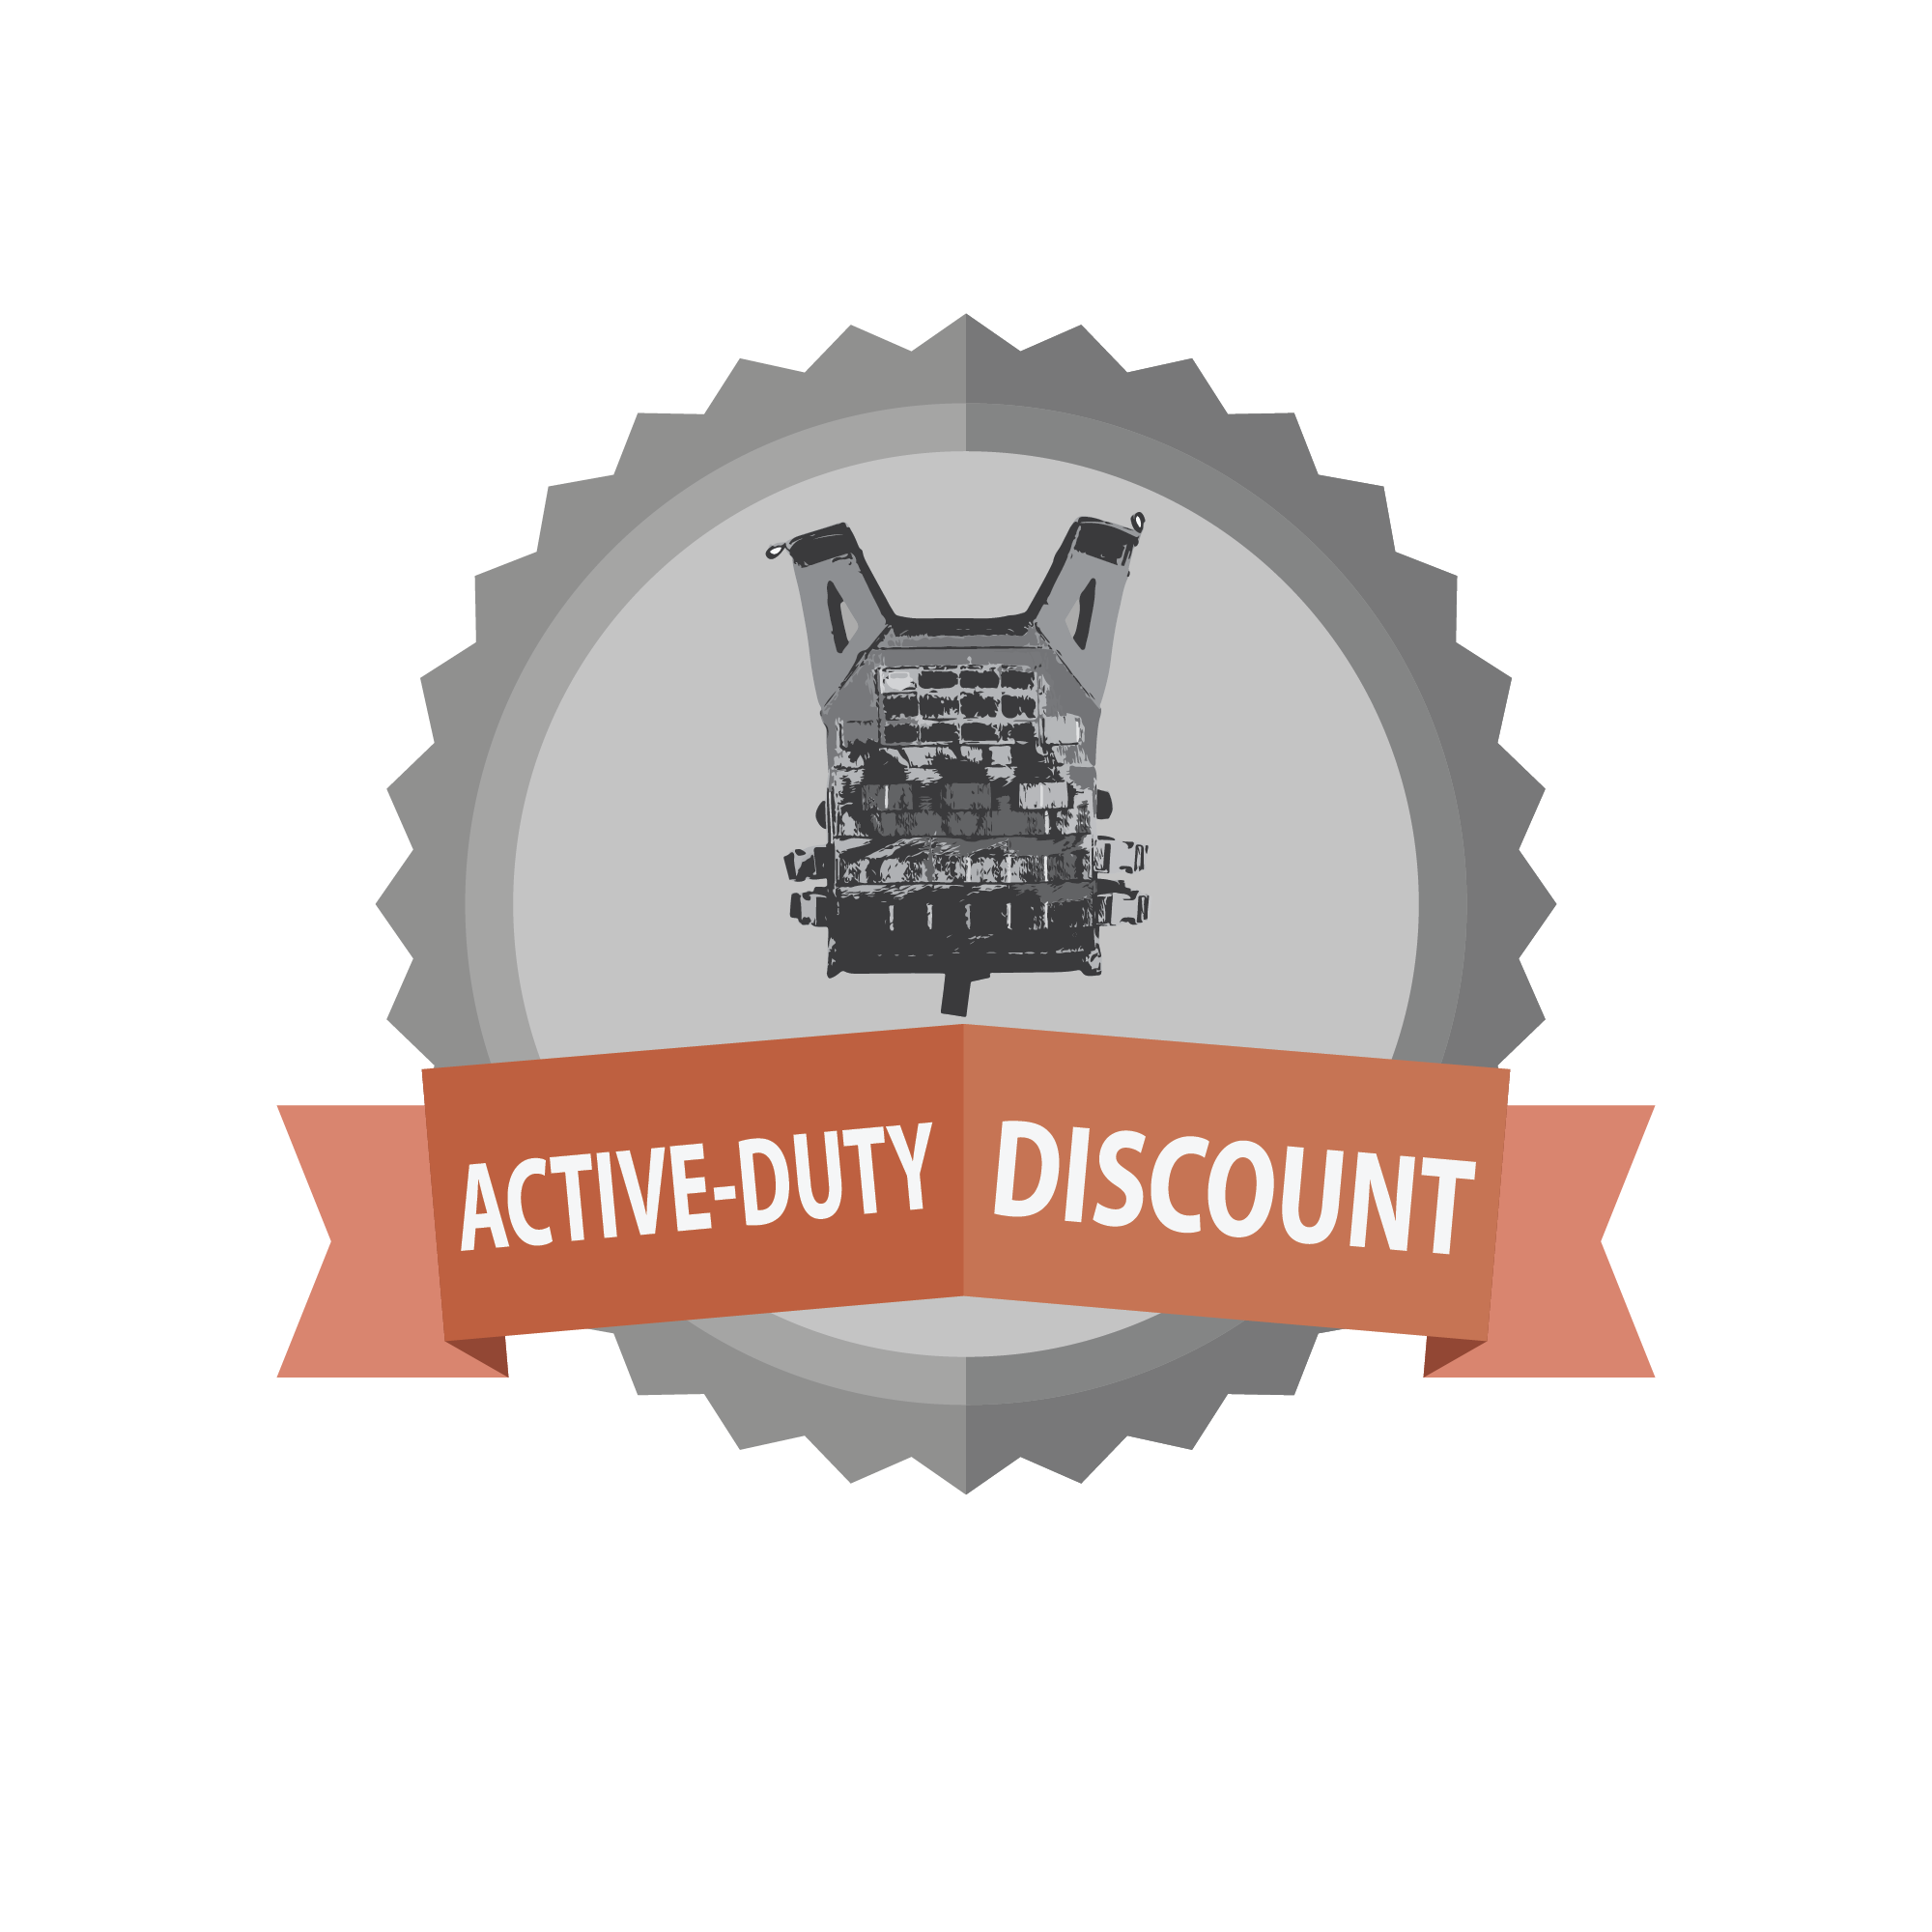 LEAF_Program_Active_Duty_Discount